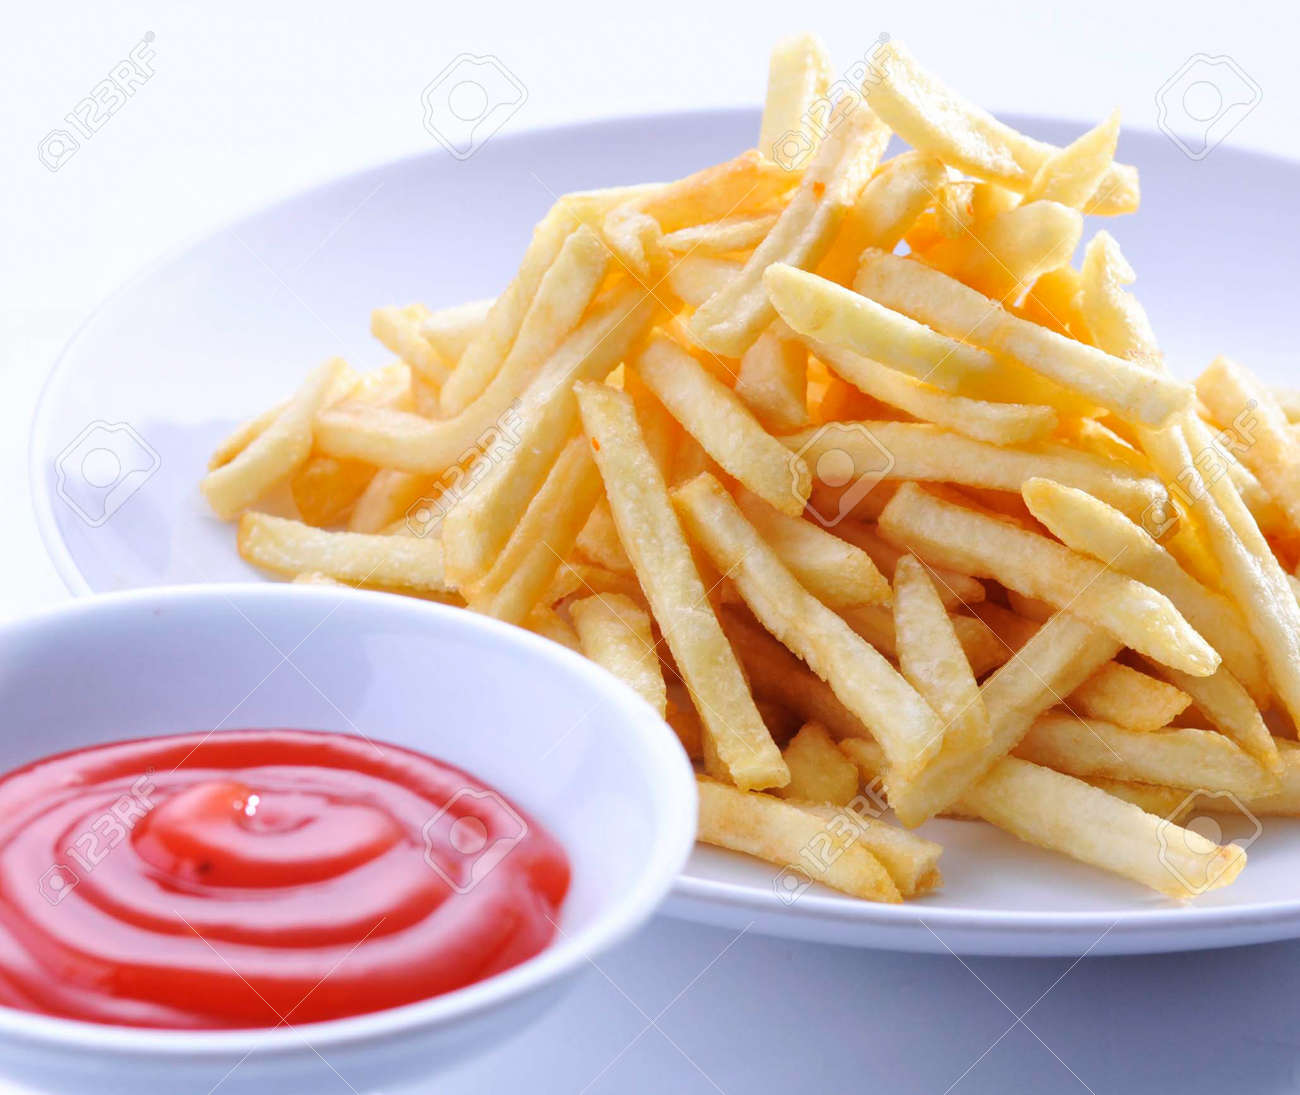 French Fries on a white background Stock Photo - 13202430